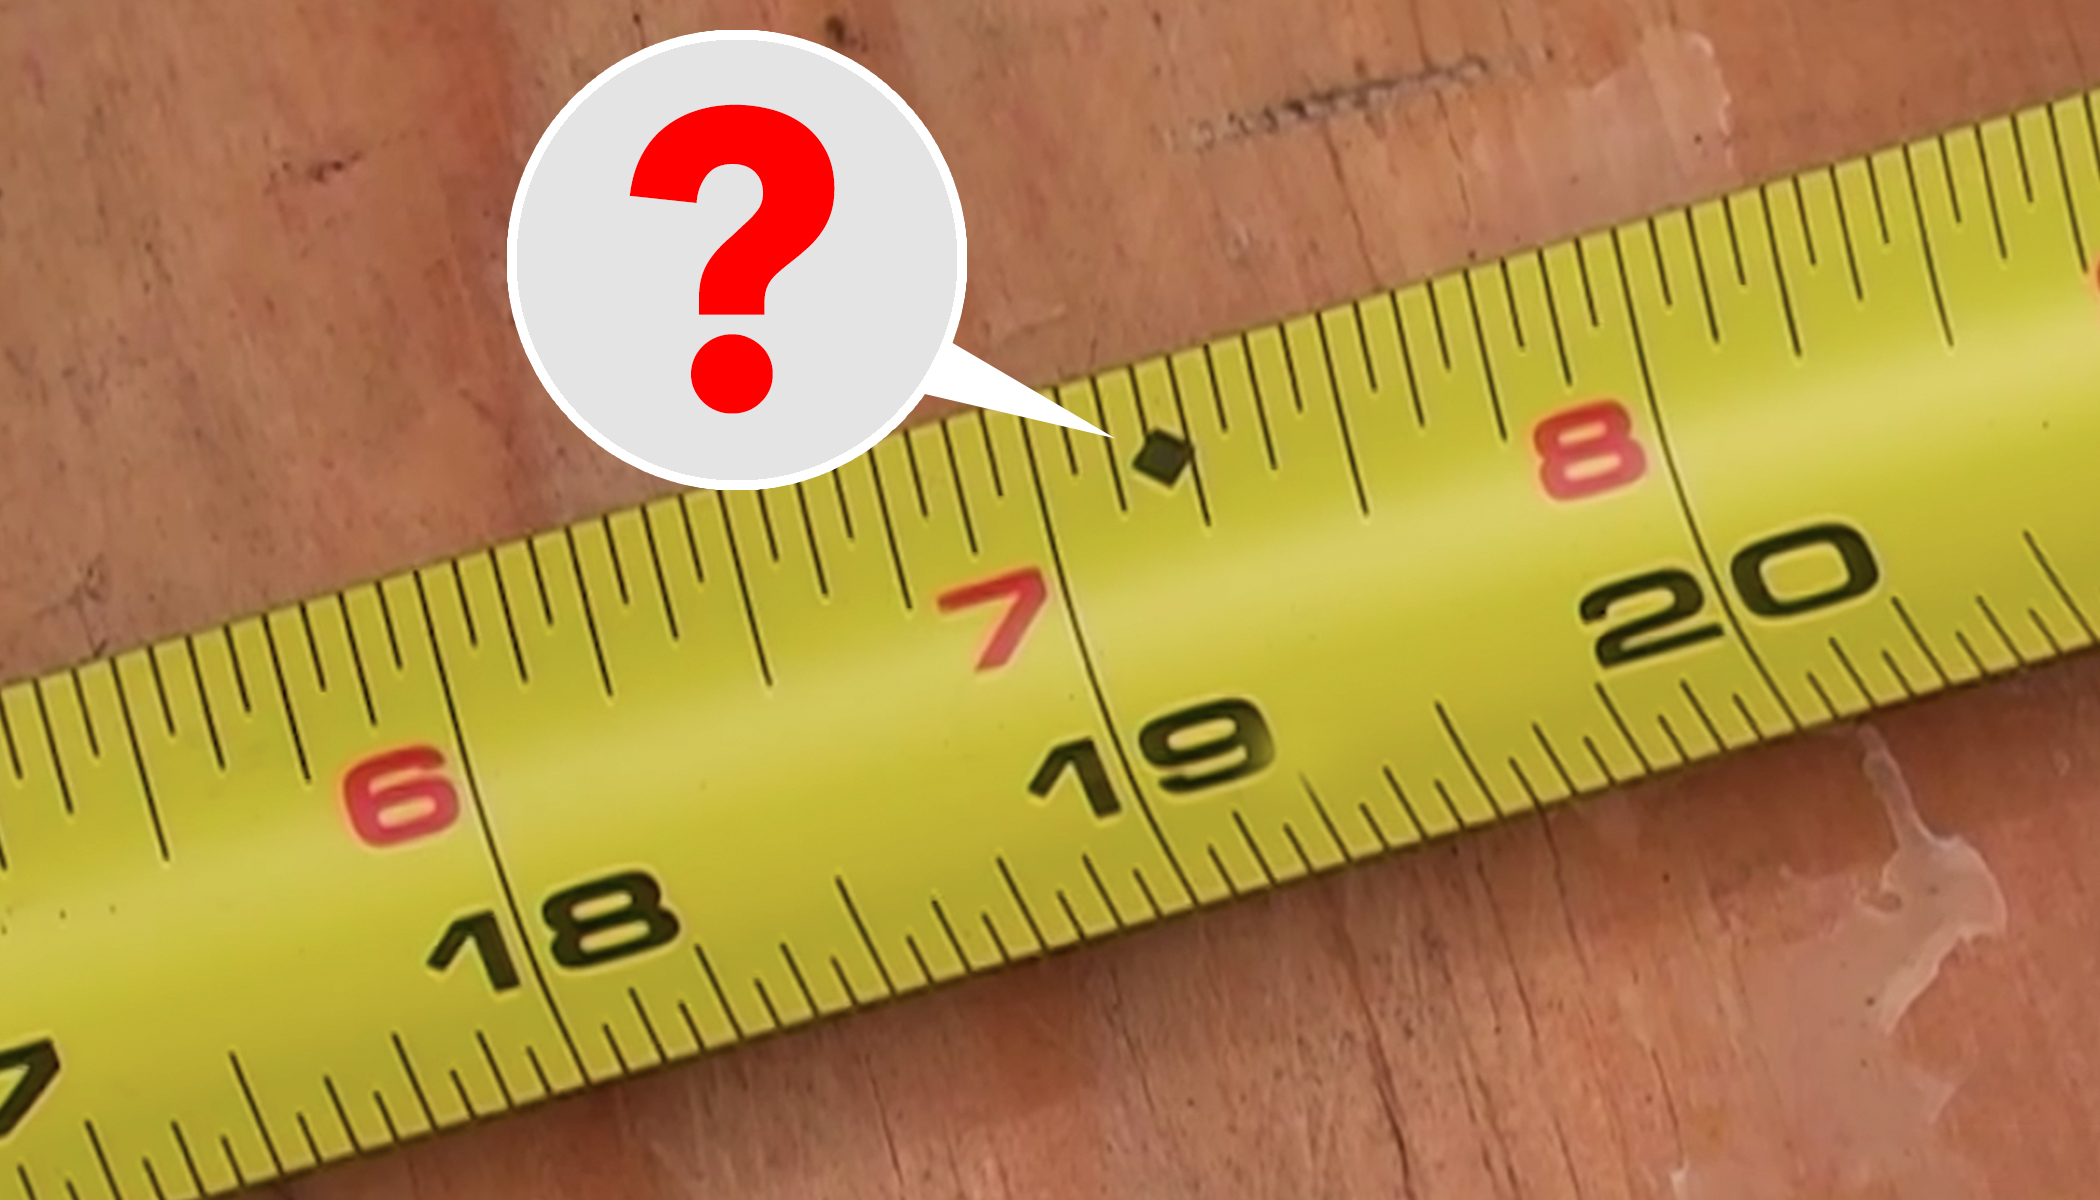 Do You Know the Purpose of Mysterious Black Diamonds on Measuring Tapes?